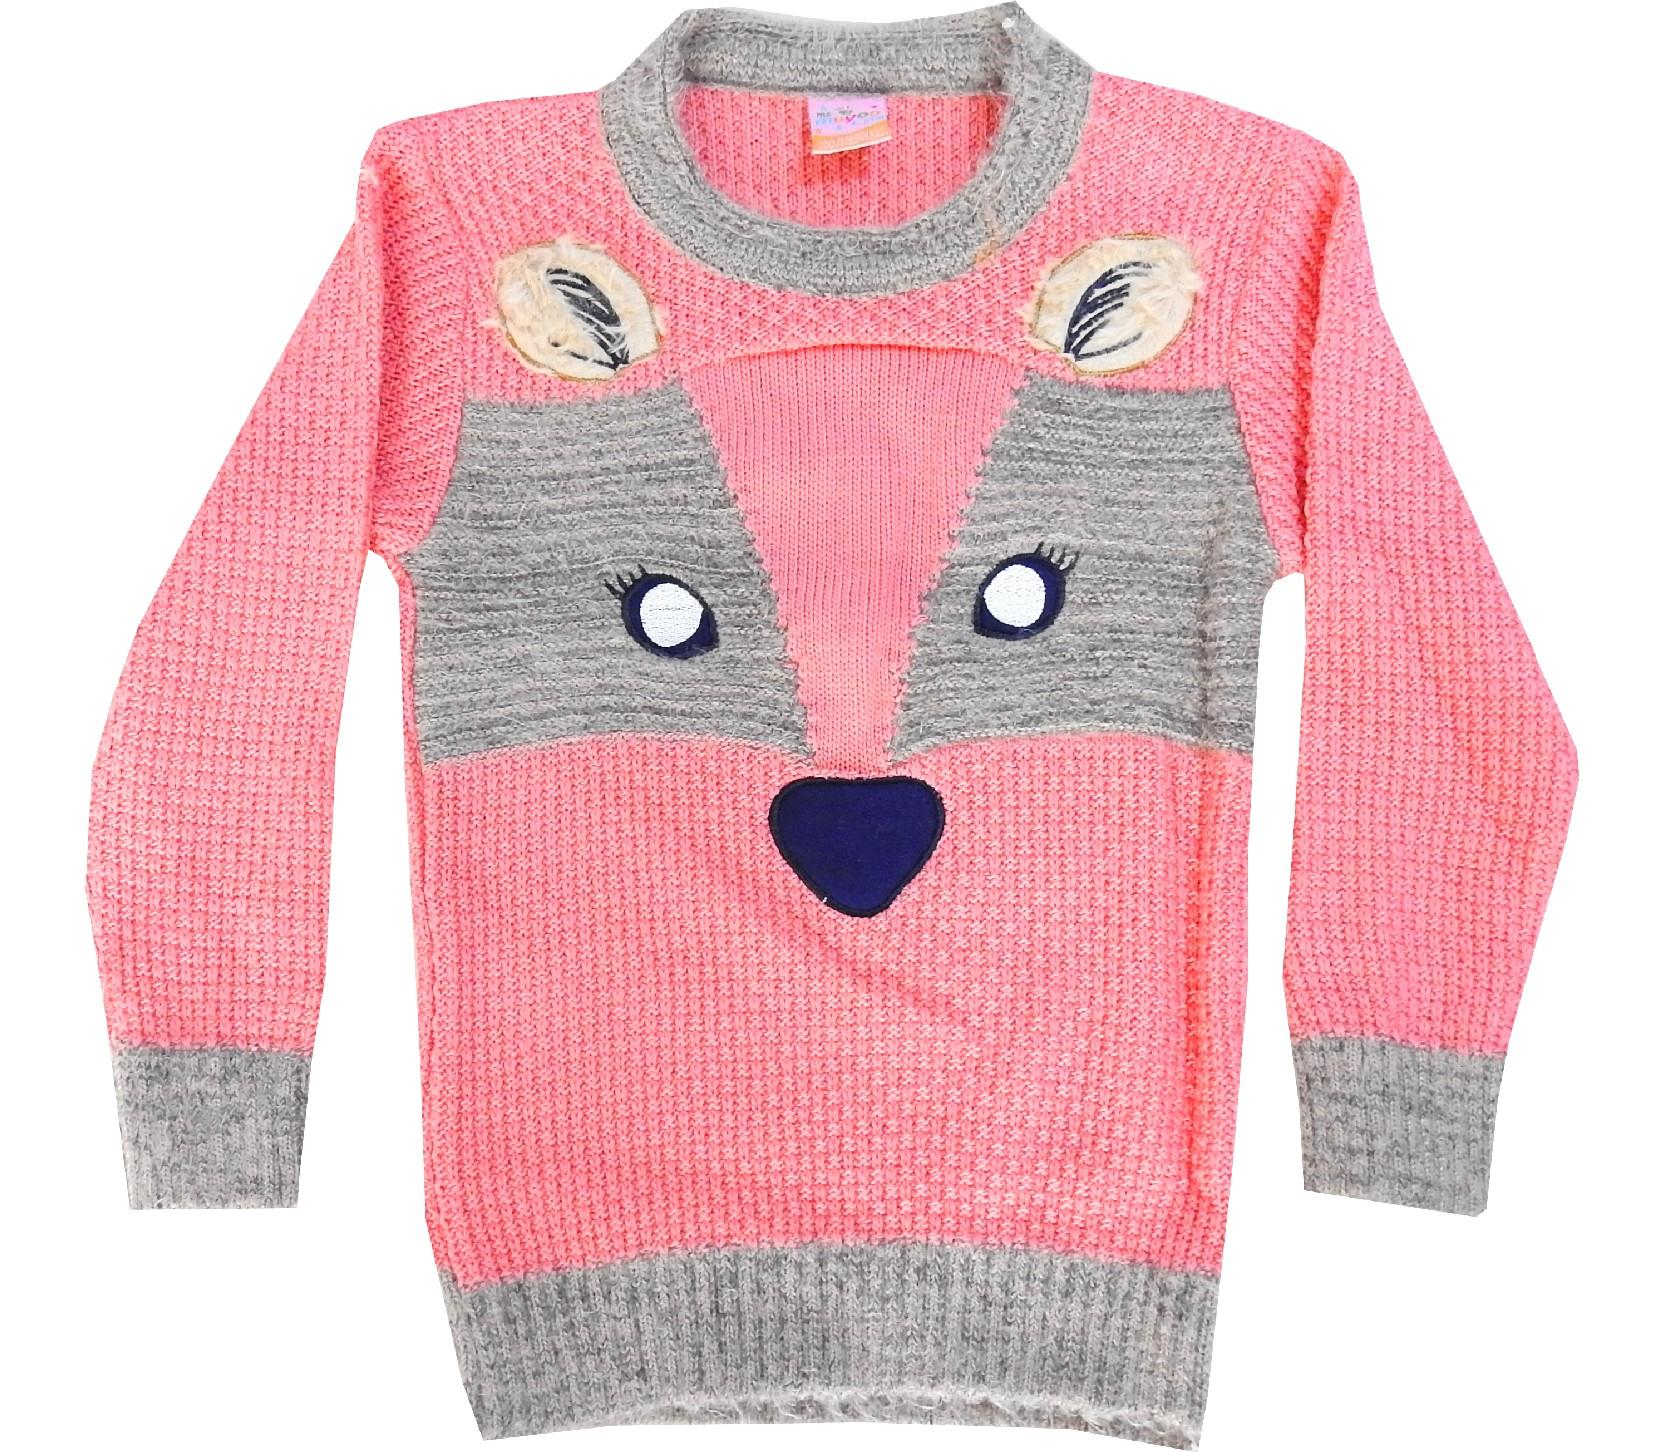 FACE OF CAT PRINTED KNITTED DESIGN SWEATER FOR GIRL (4-6-8-10 AGE)